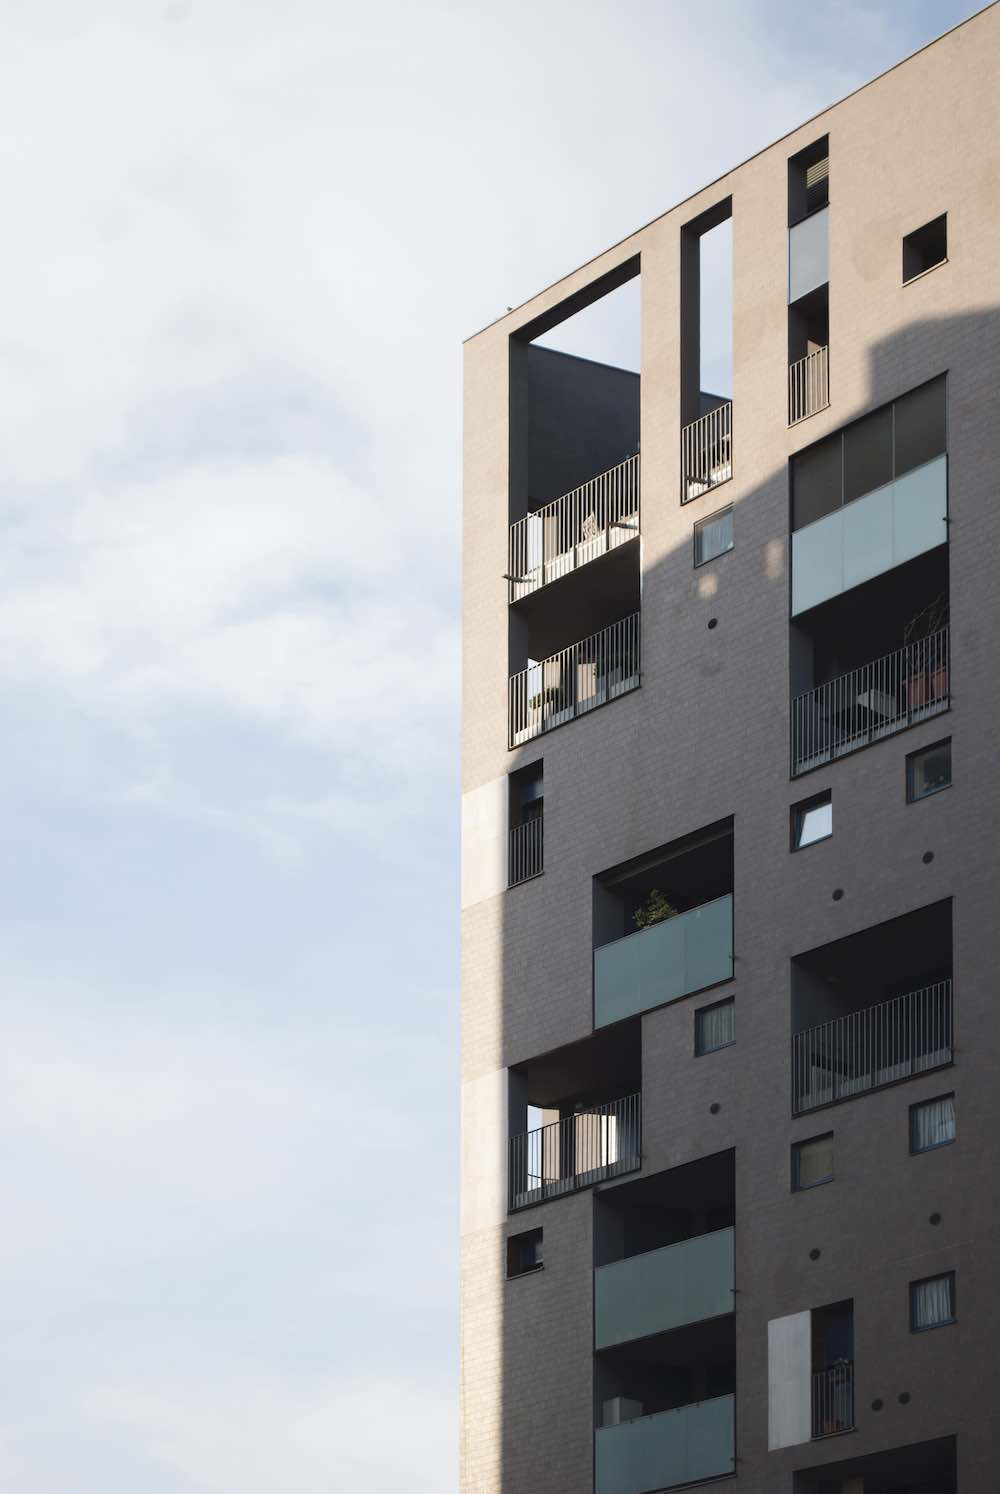 Residential buildings by Cino Zucchi Architects in Portello - Courtesy of Alpha District.